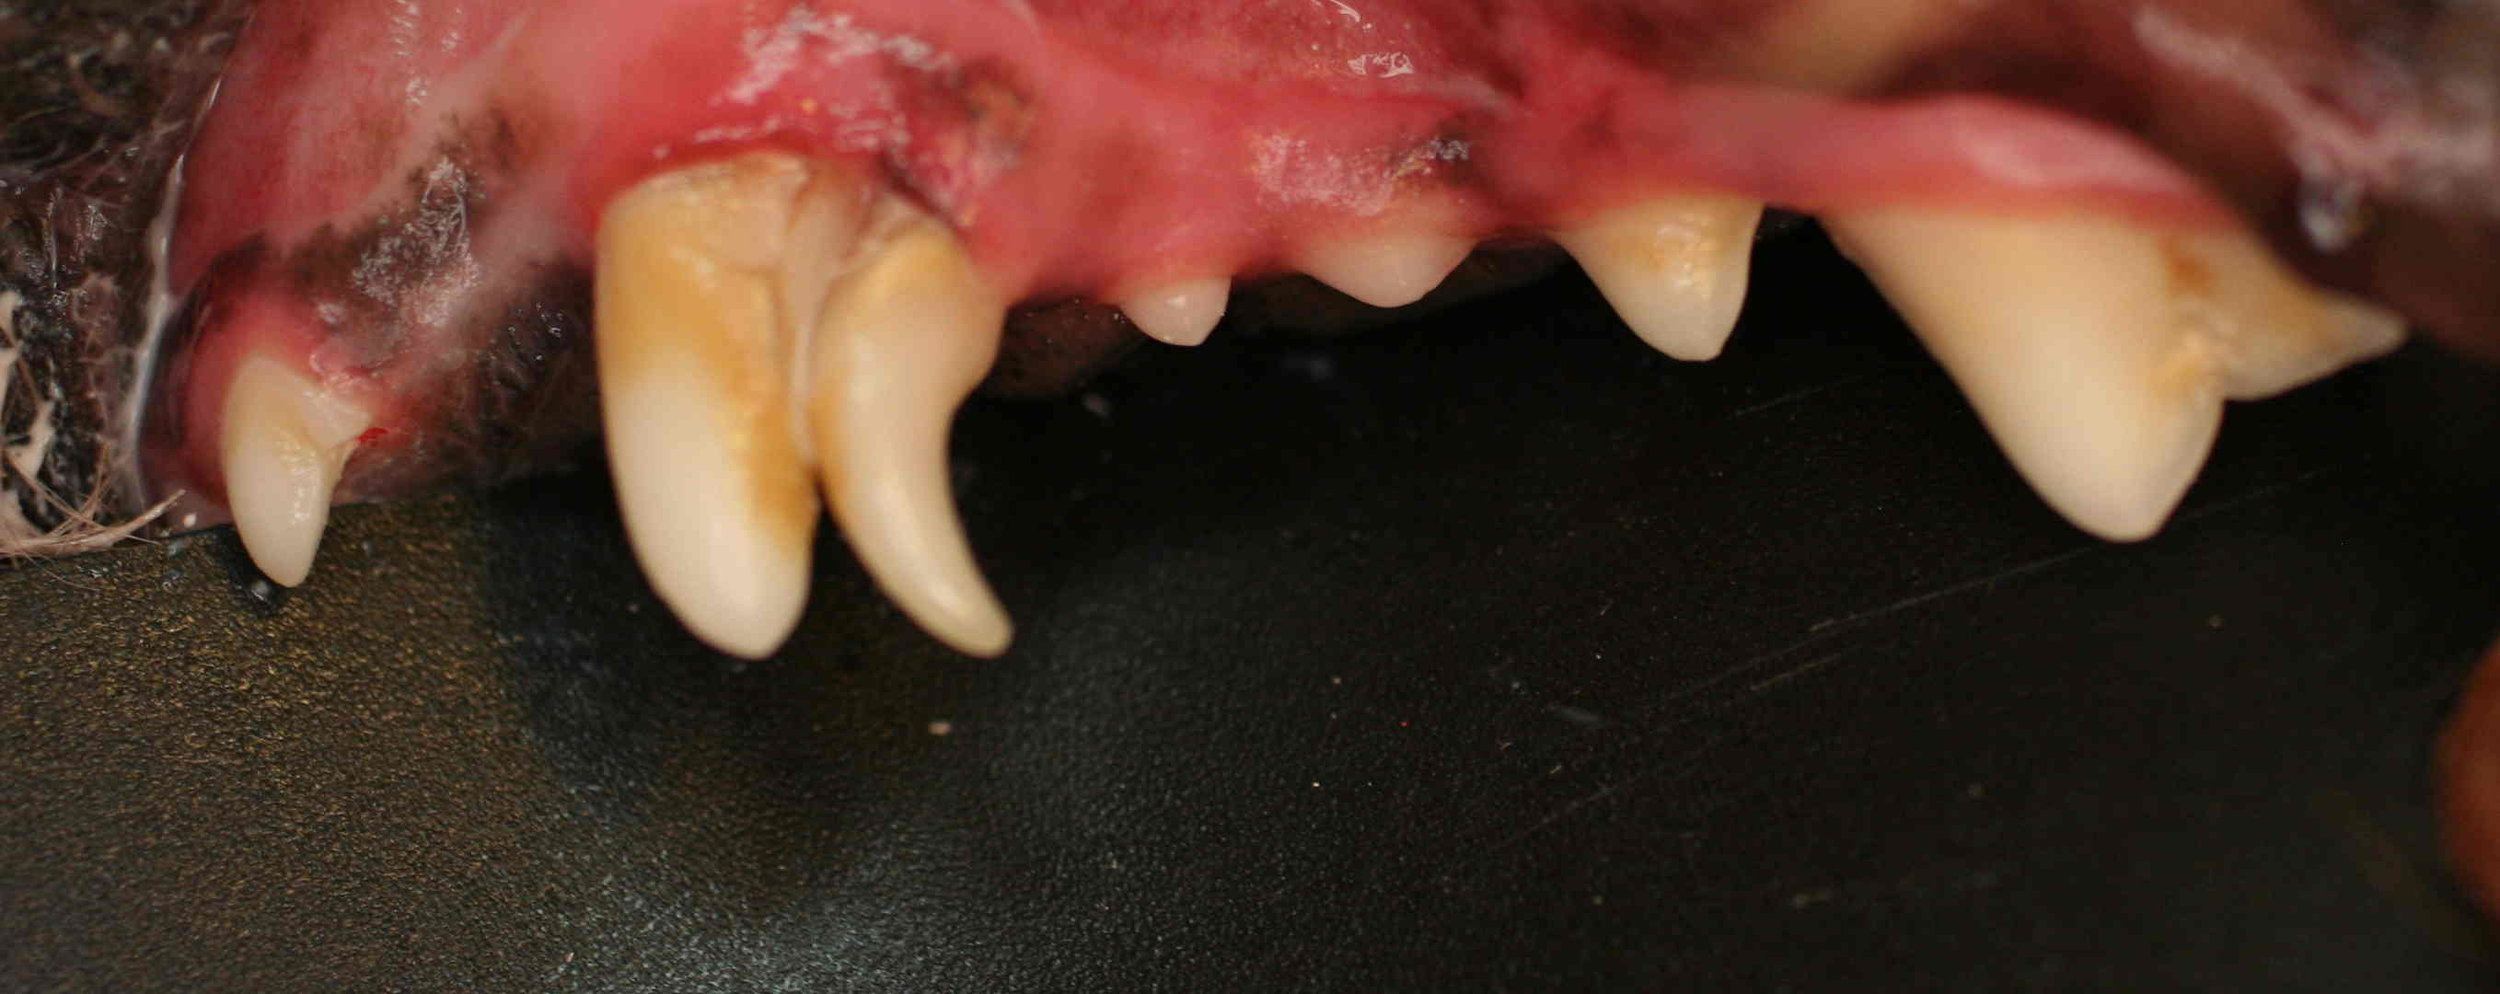 BEFORE  Severe calculus and gingivitis, persistent puppy canine tooth.